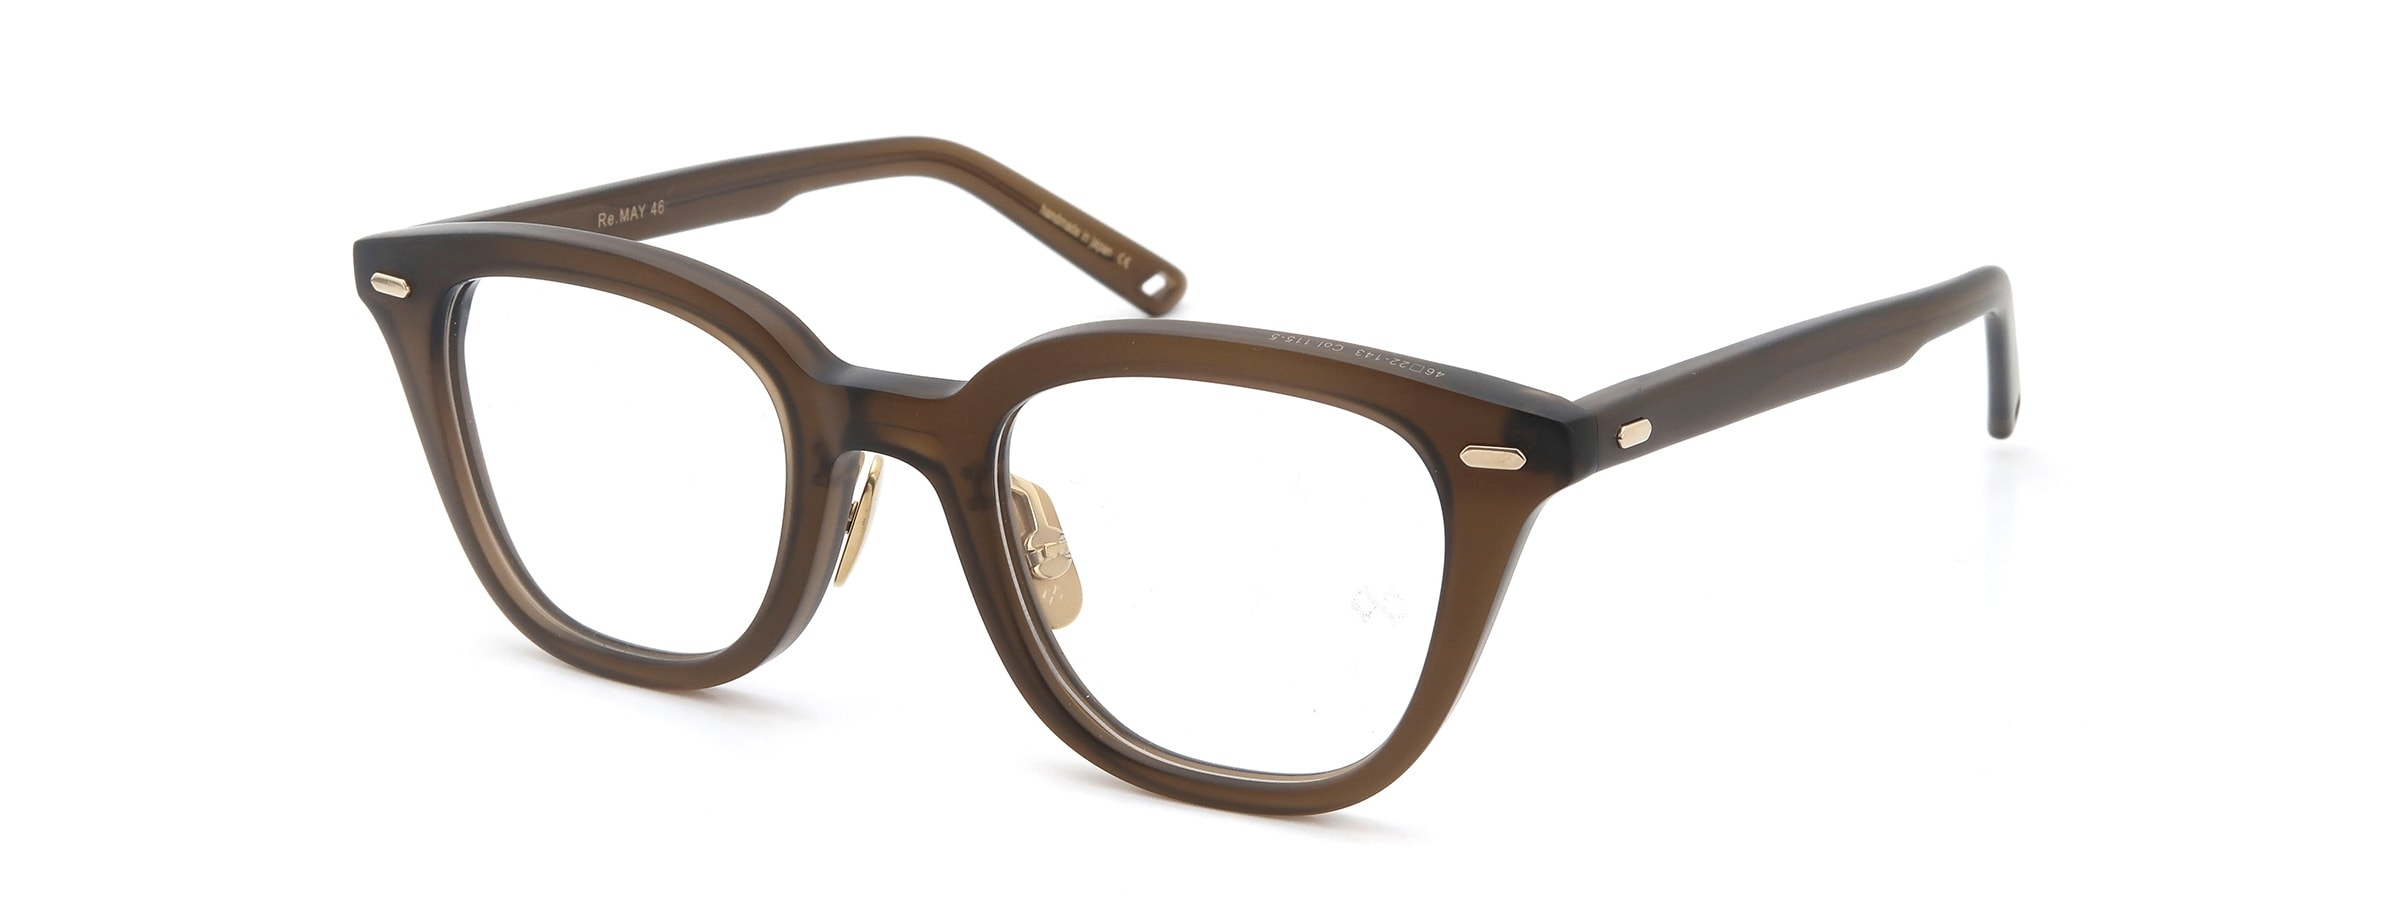 OG × OLIVER GOLDSMITH Re:MAY 46 リ:メイ